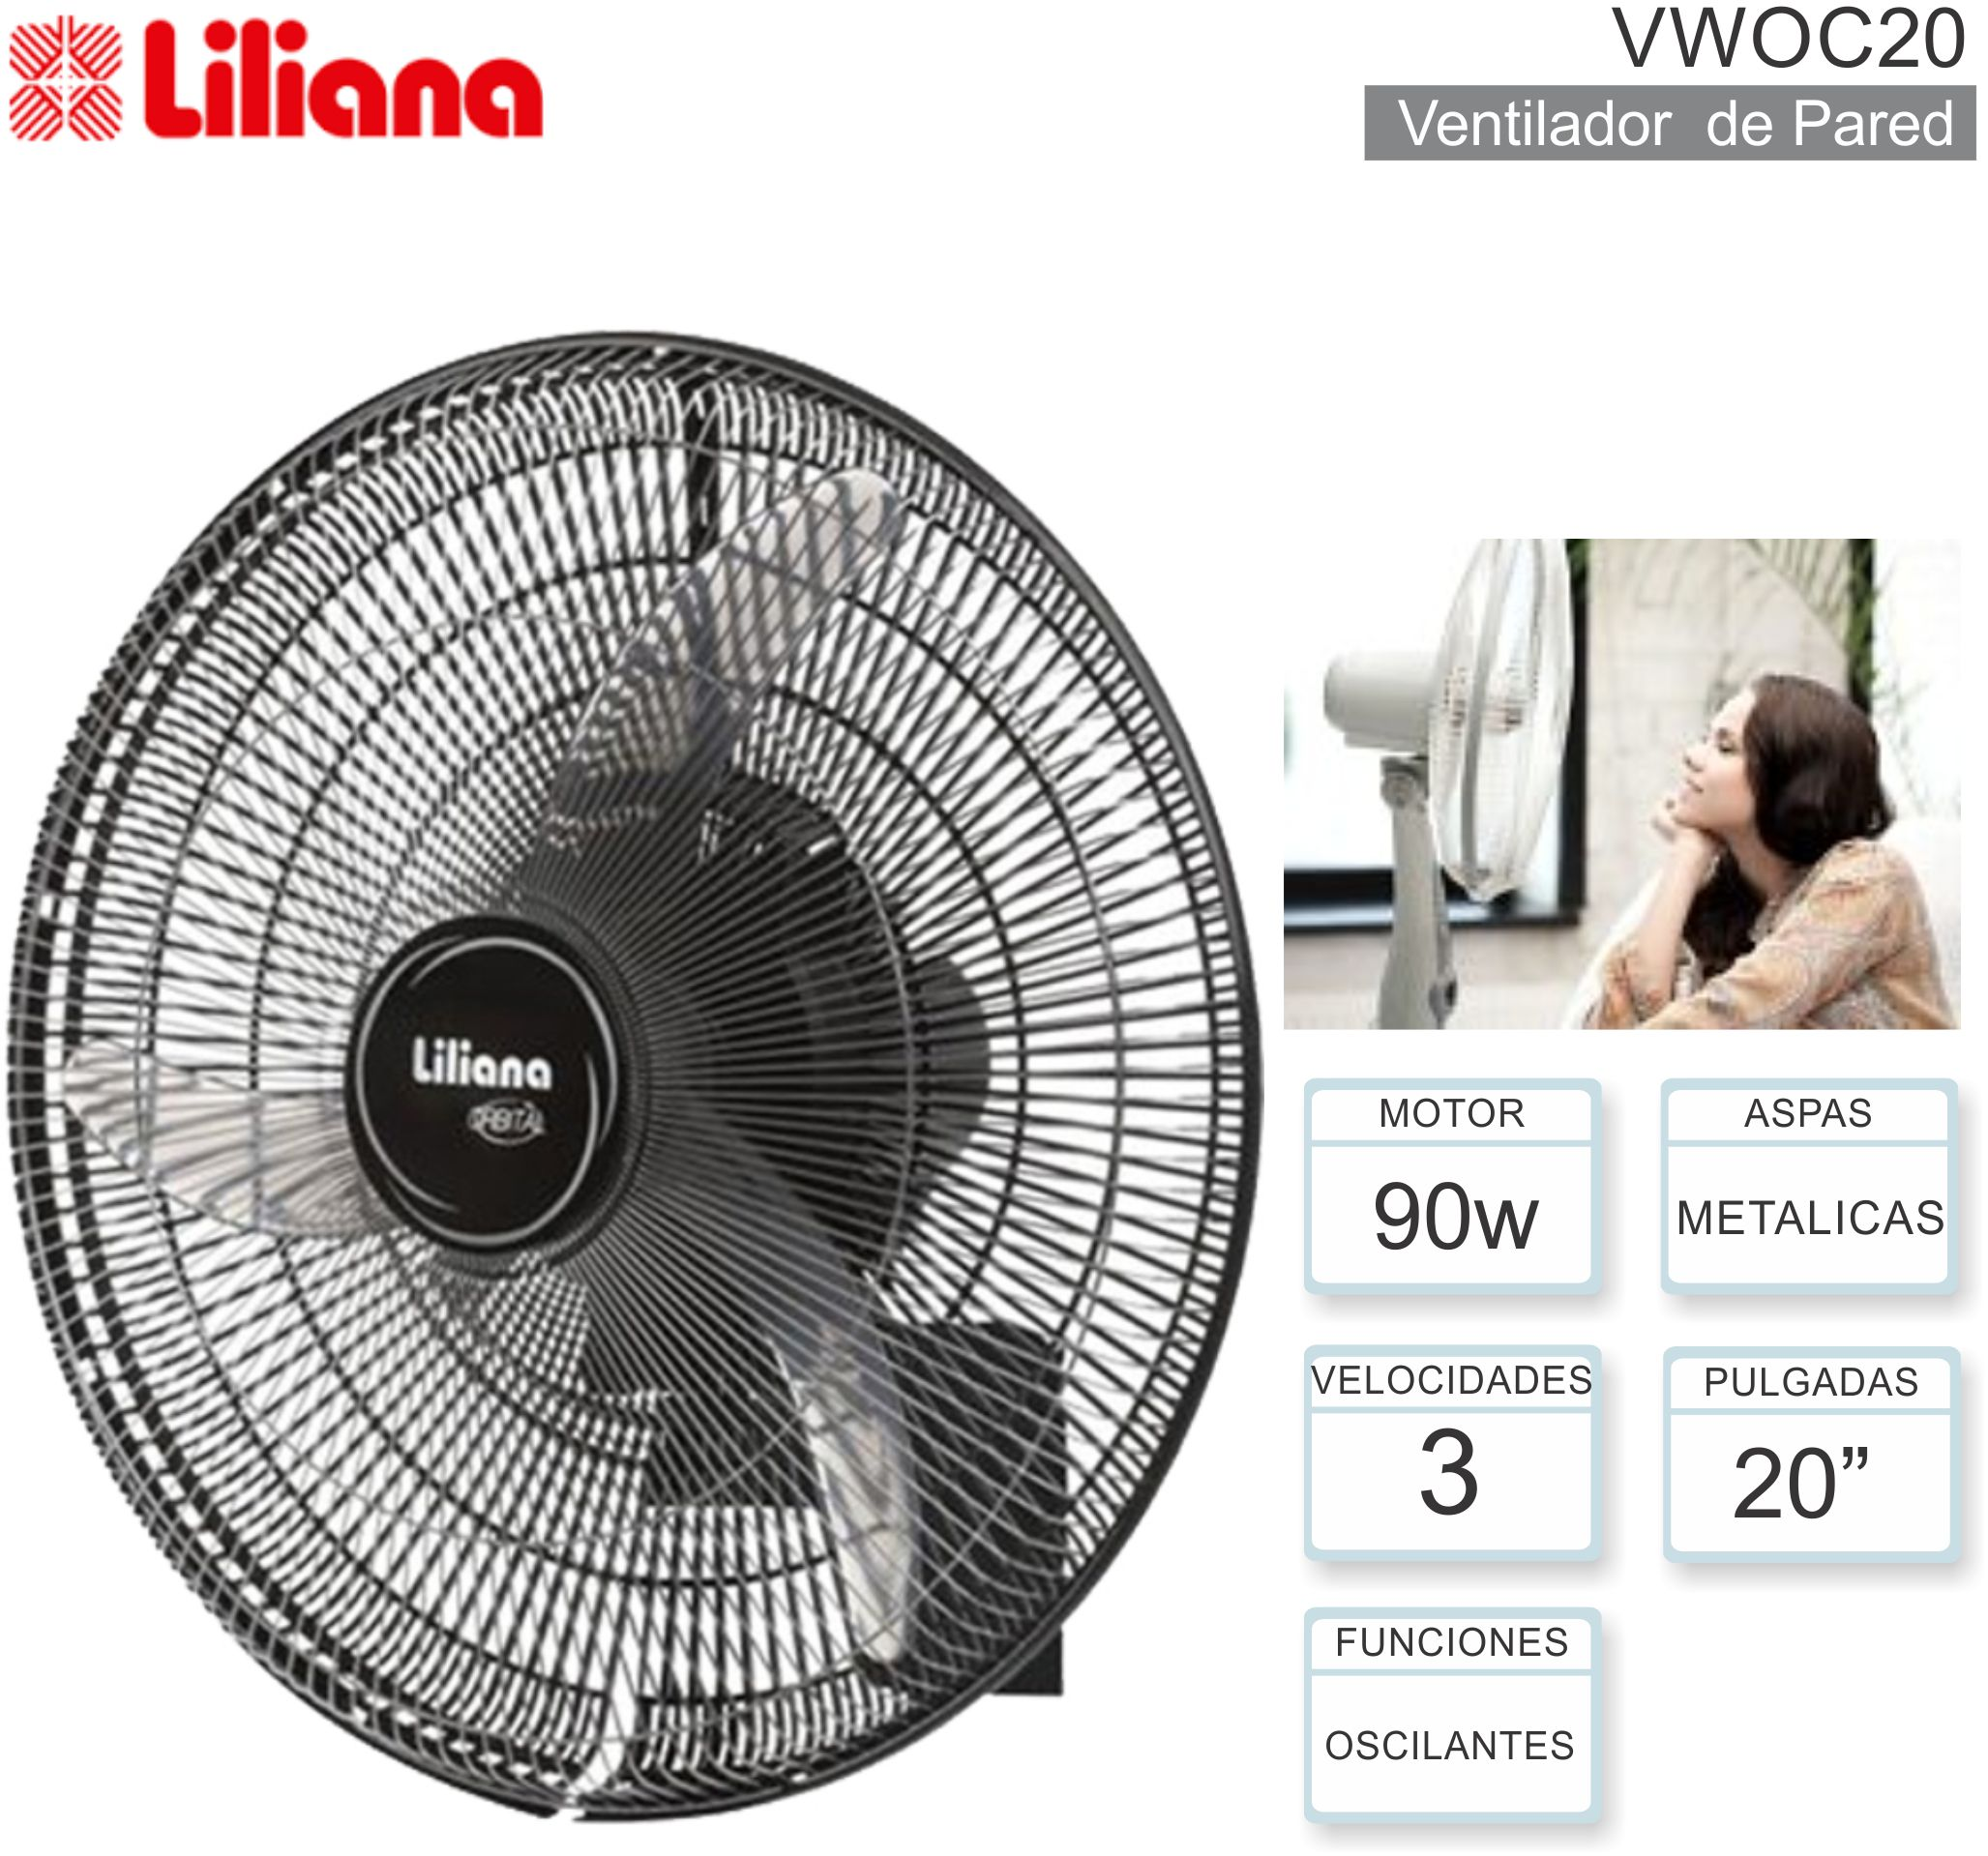 Ventilador de Pared 20p LILIANA VWOC20